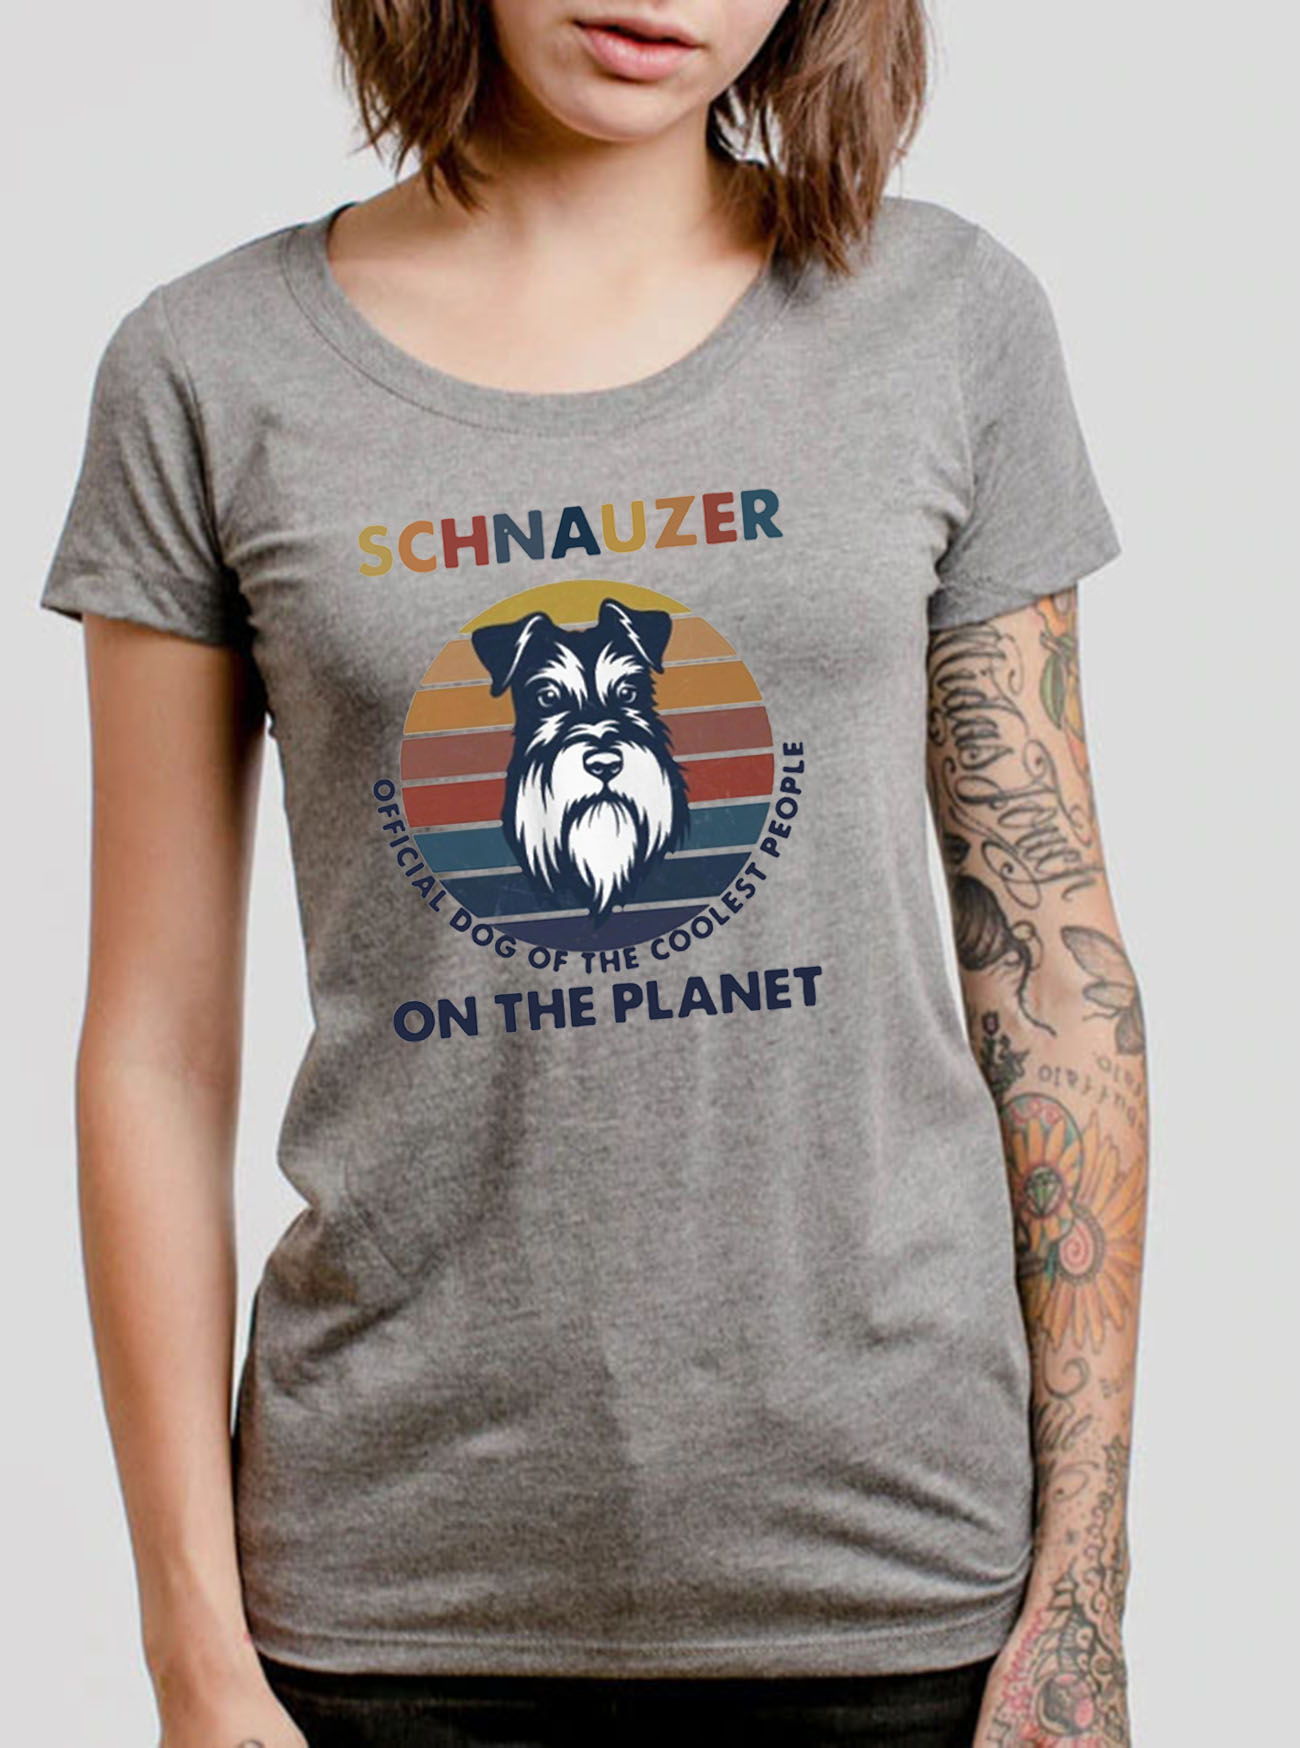 Schnauzer Official Dog Of The Coolest People On The Planet Vintage Retro Classic T-Shirt